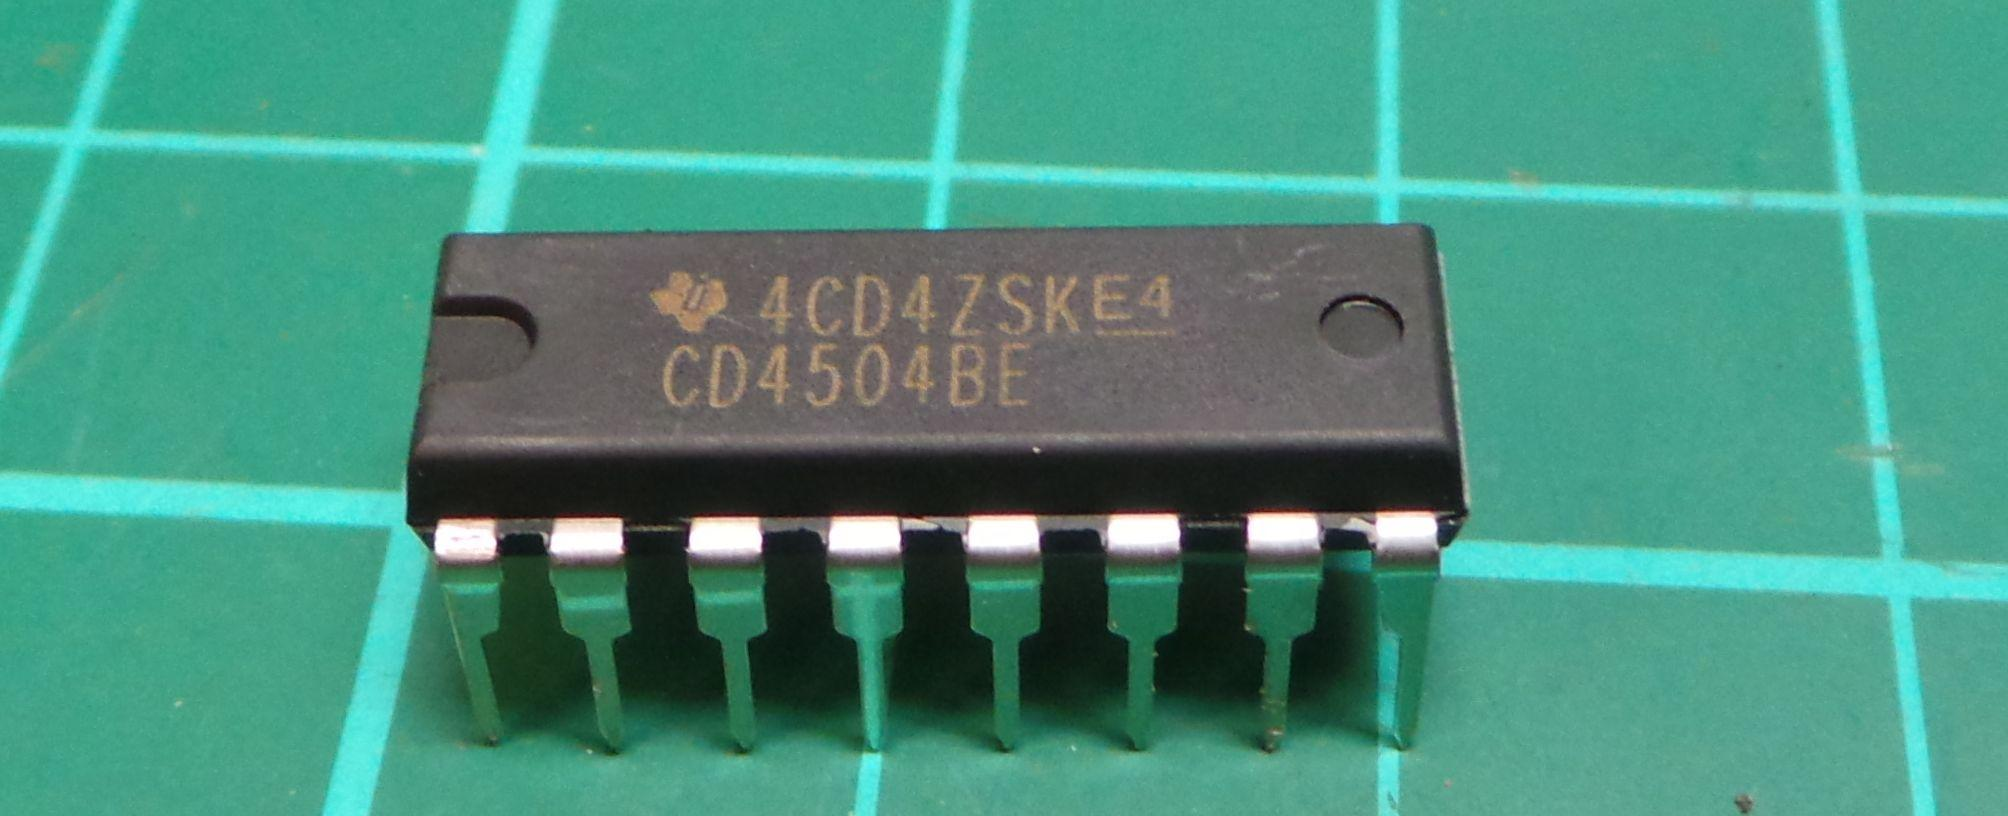 4504 Cd4504be 6 Channel Ttl To Cmos Level Converter Dip16 Dsmcz Rs232 Using Transistor Circuit